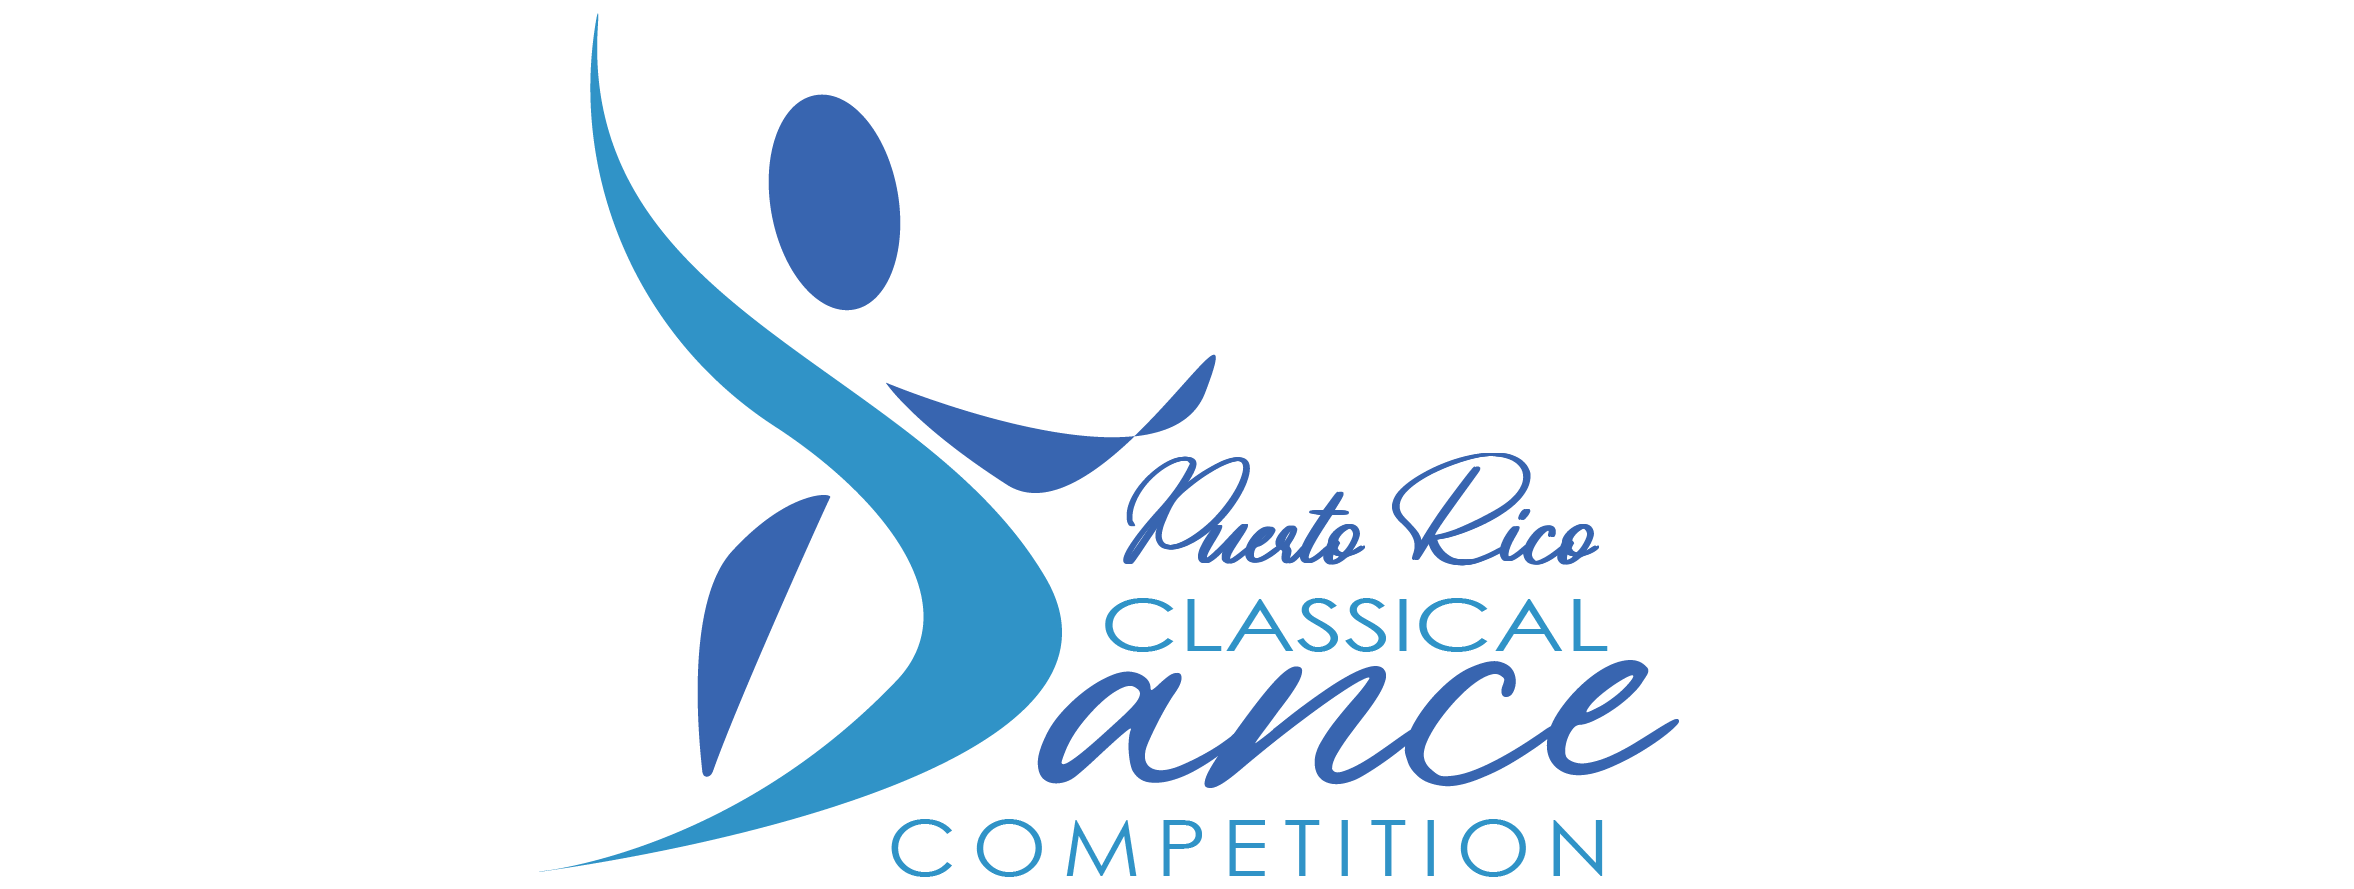 Puerto Rico Classical Dance Competition